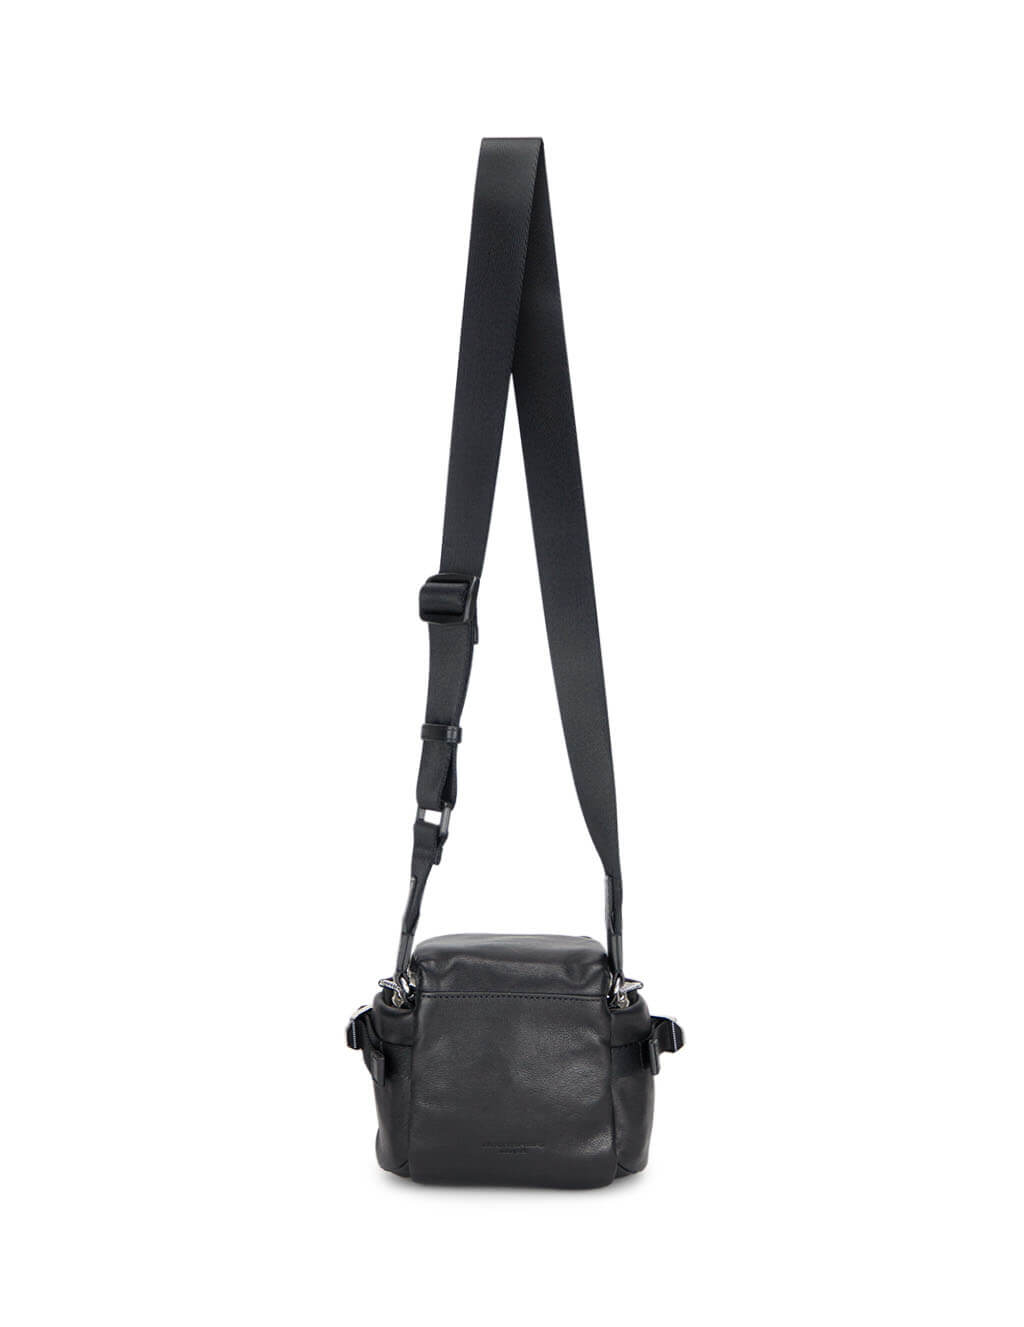 Alexander Wang Women's Black Surplus Camera Bag 20C219L014001